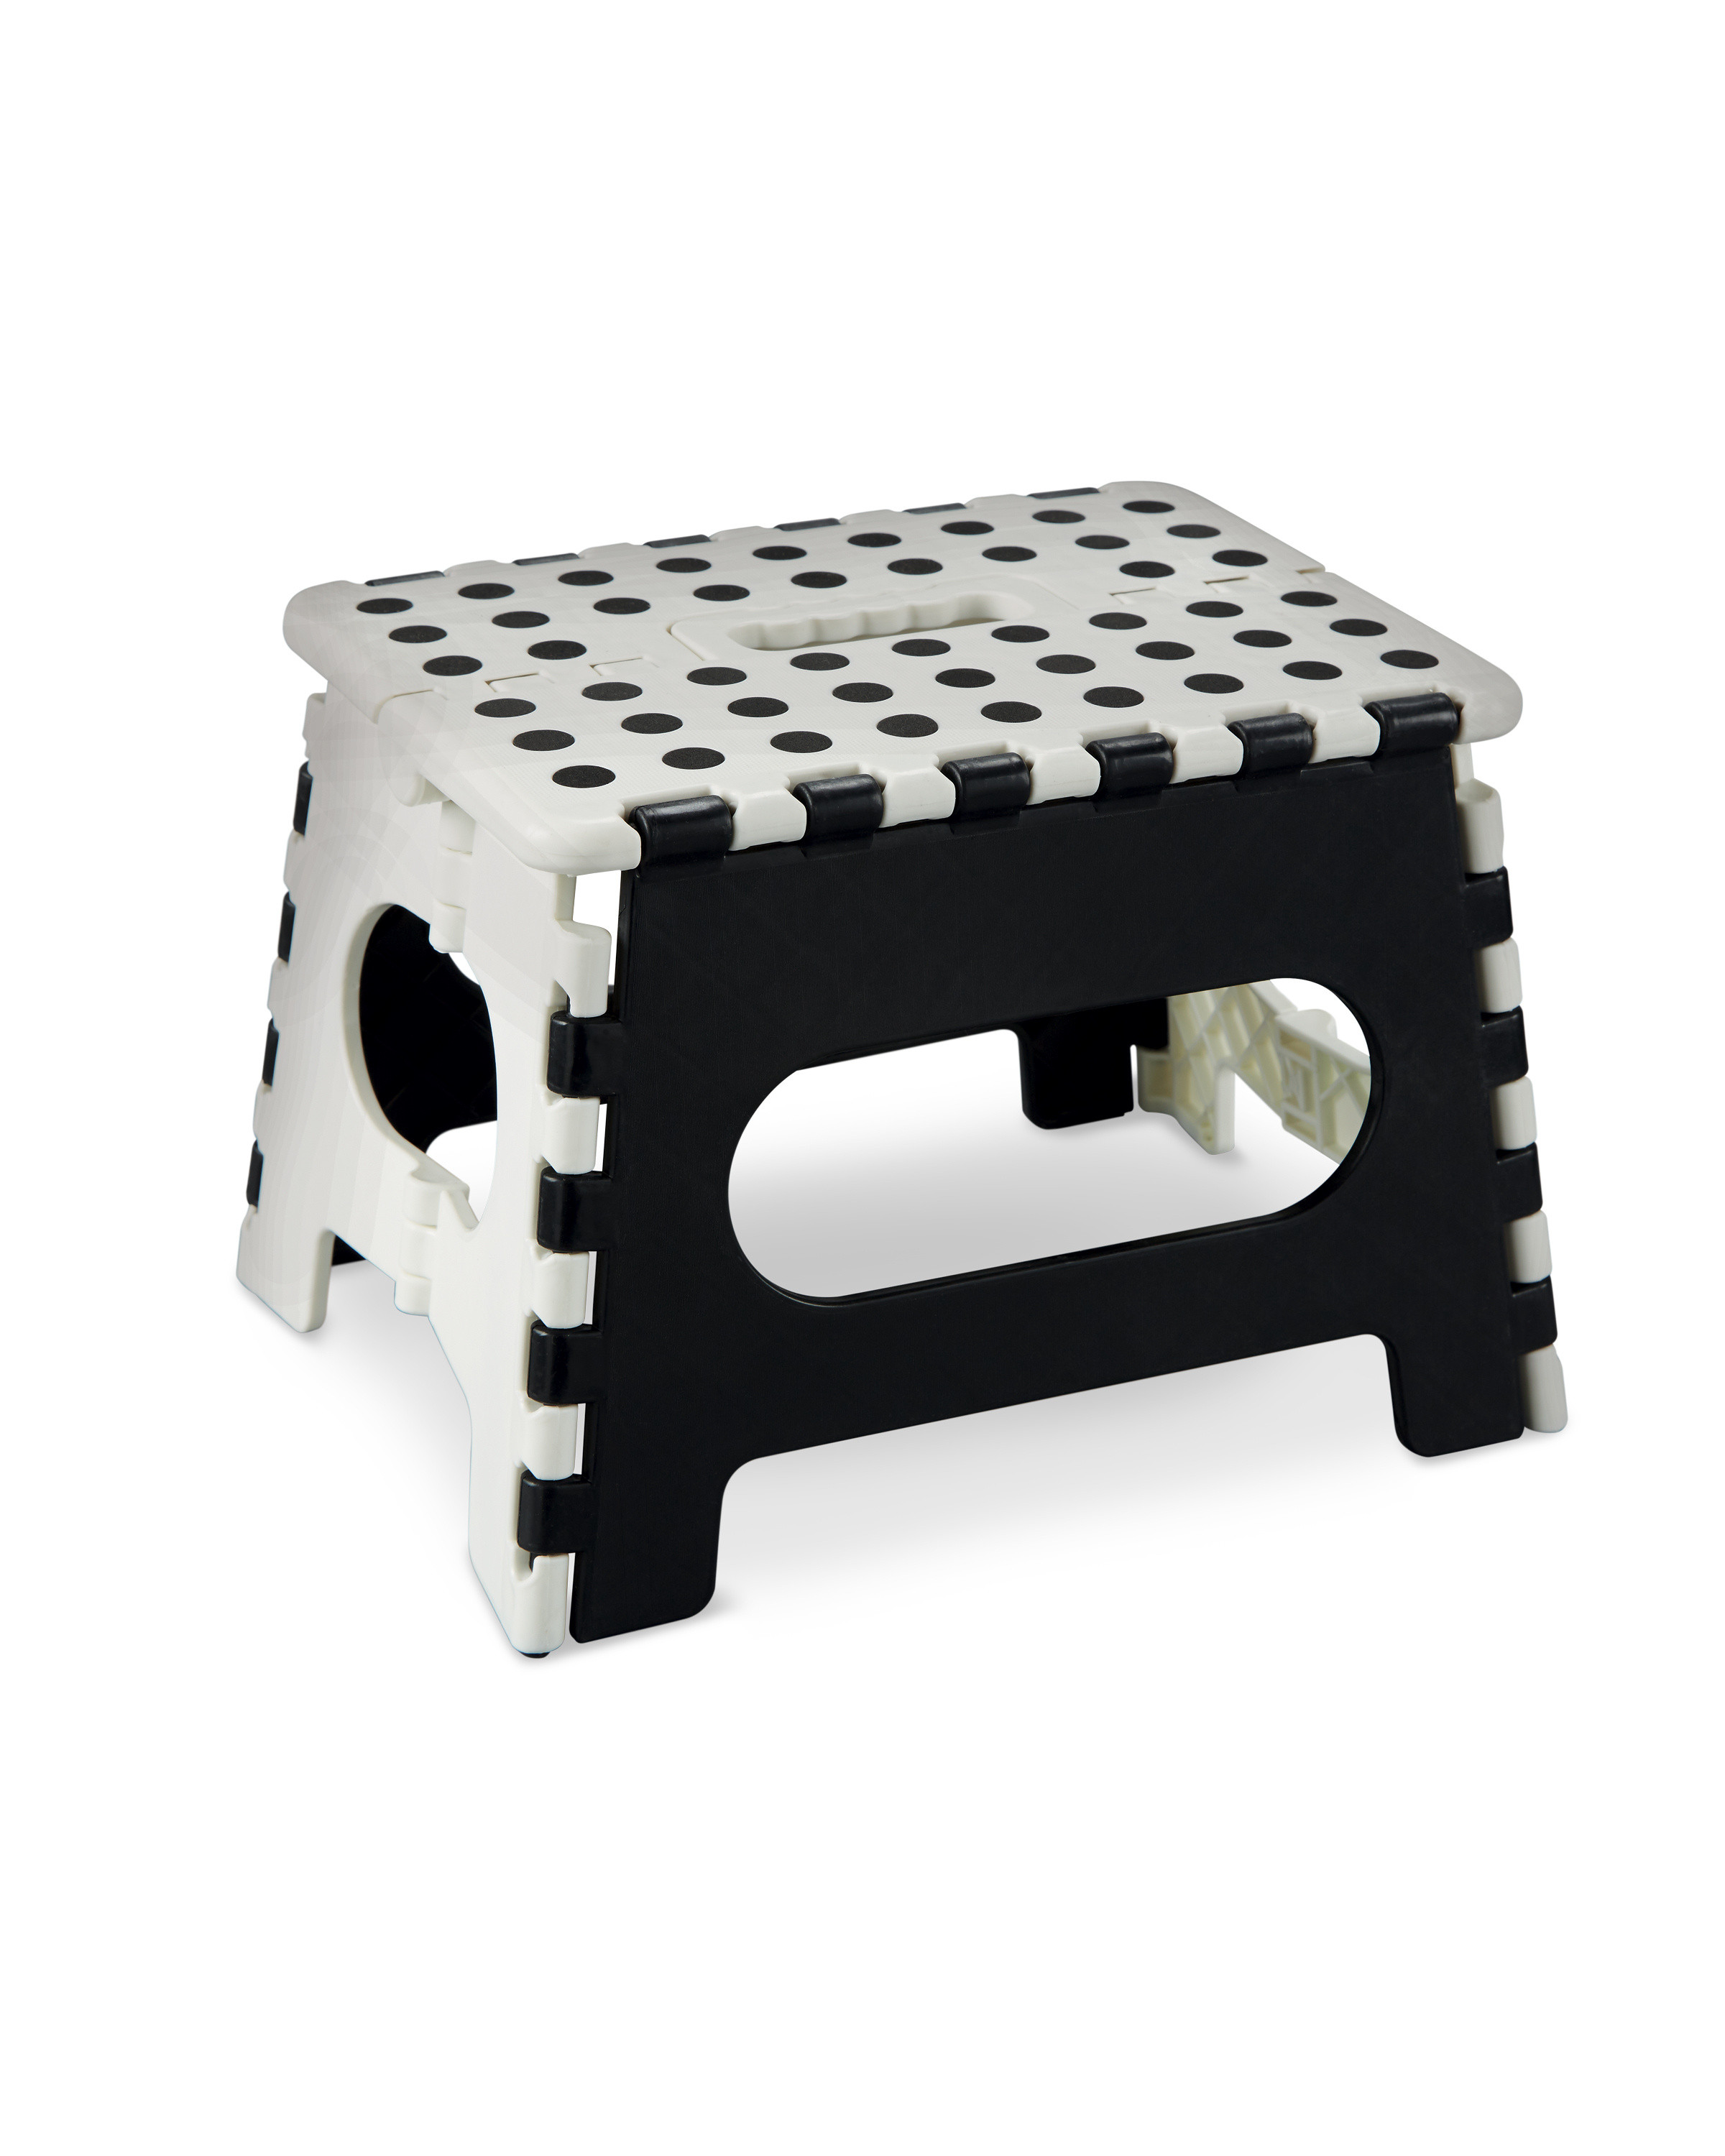 Strange White And Black Folding Step Stool Ibusinesslaw Wood Chair Design Ideas Ibusinesslaworg